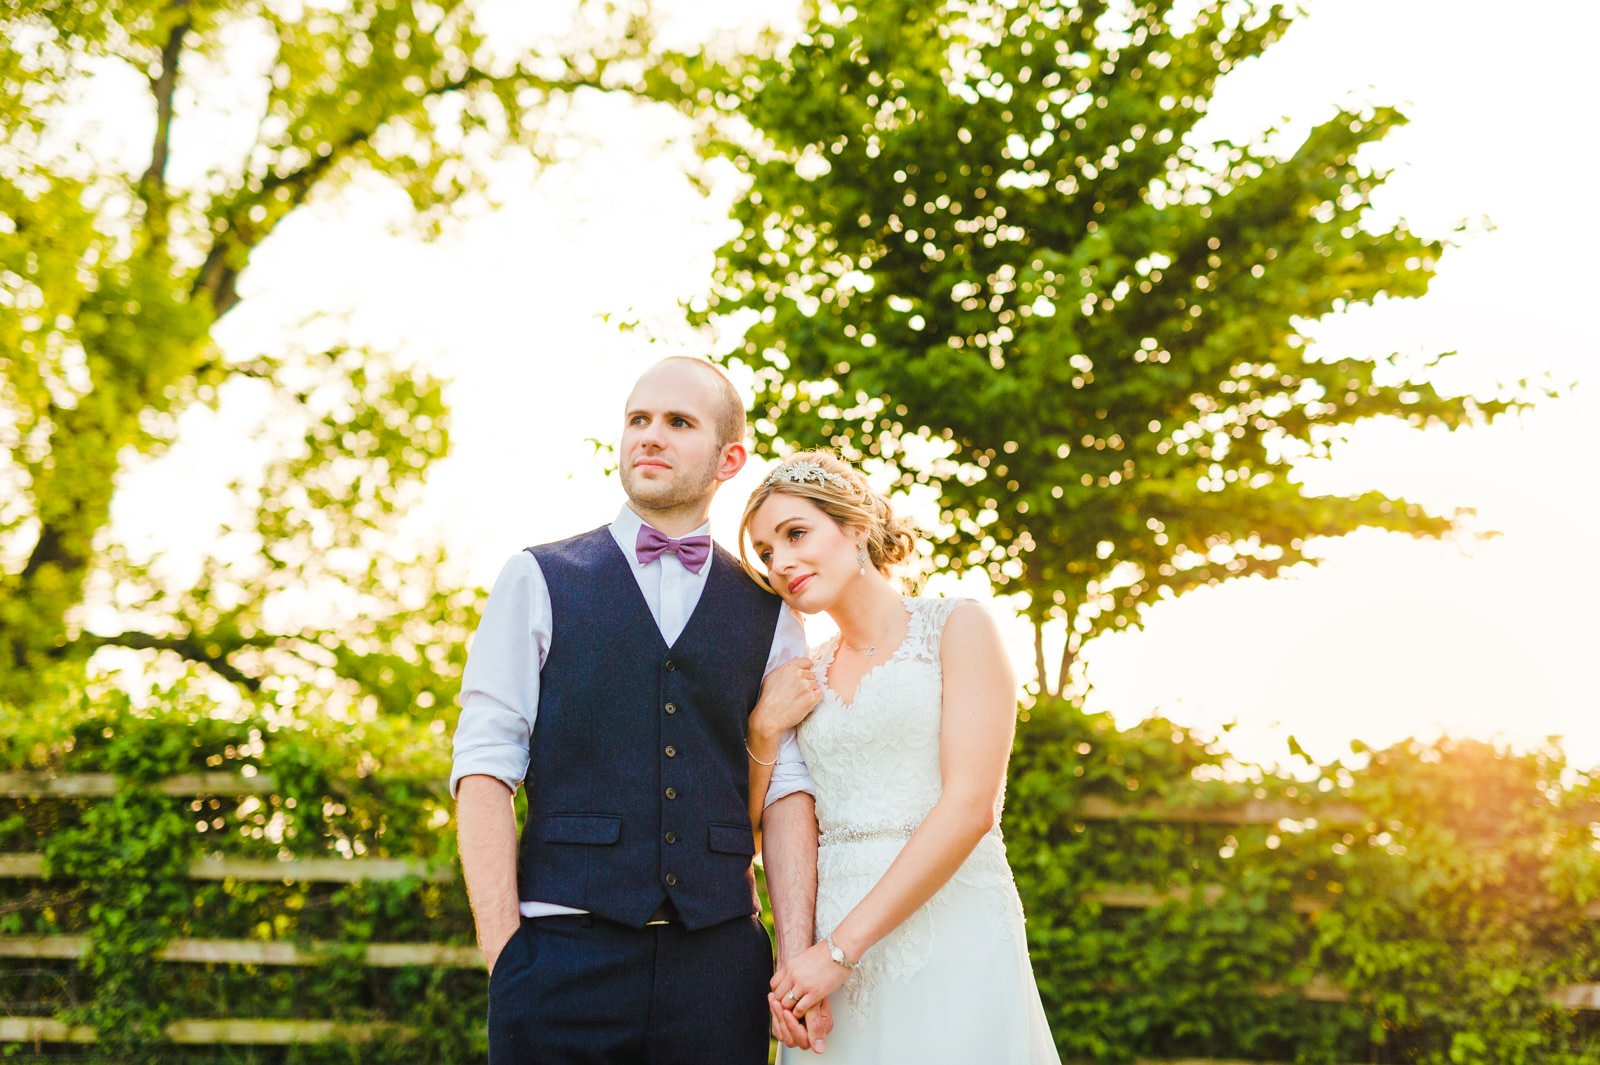 millers of netley wedding 92 - Millers Of Netley wedding, Dorrington, Shrewsbury | Emma + Ben